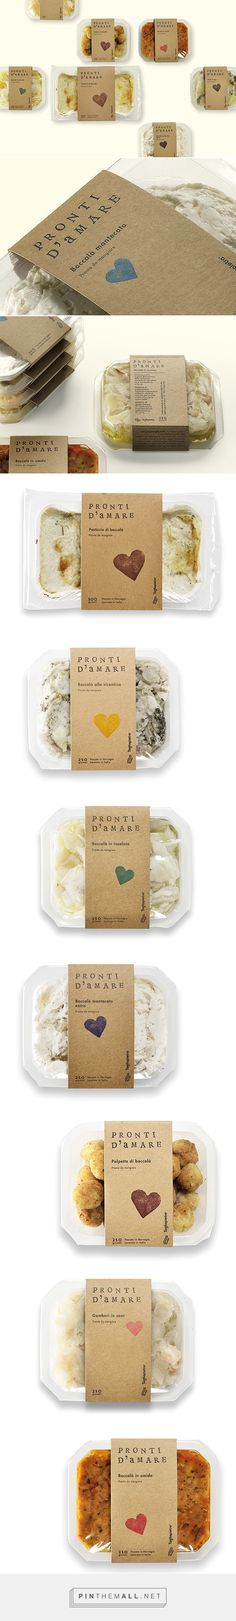 "Pronti D'Amare on Behance curated by Packaging Diva PD. ""Pronti d'amare"" in Italian means ""ready to love"", but sounds like ""ready from the sea"". Tasty simple packaging."